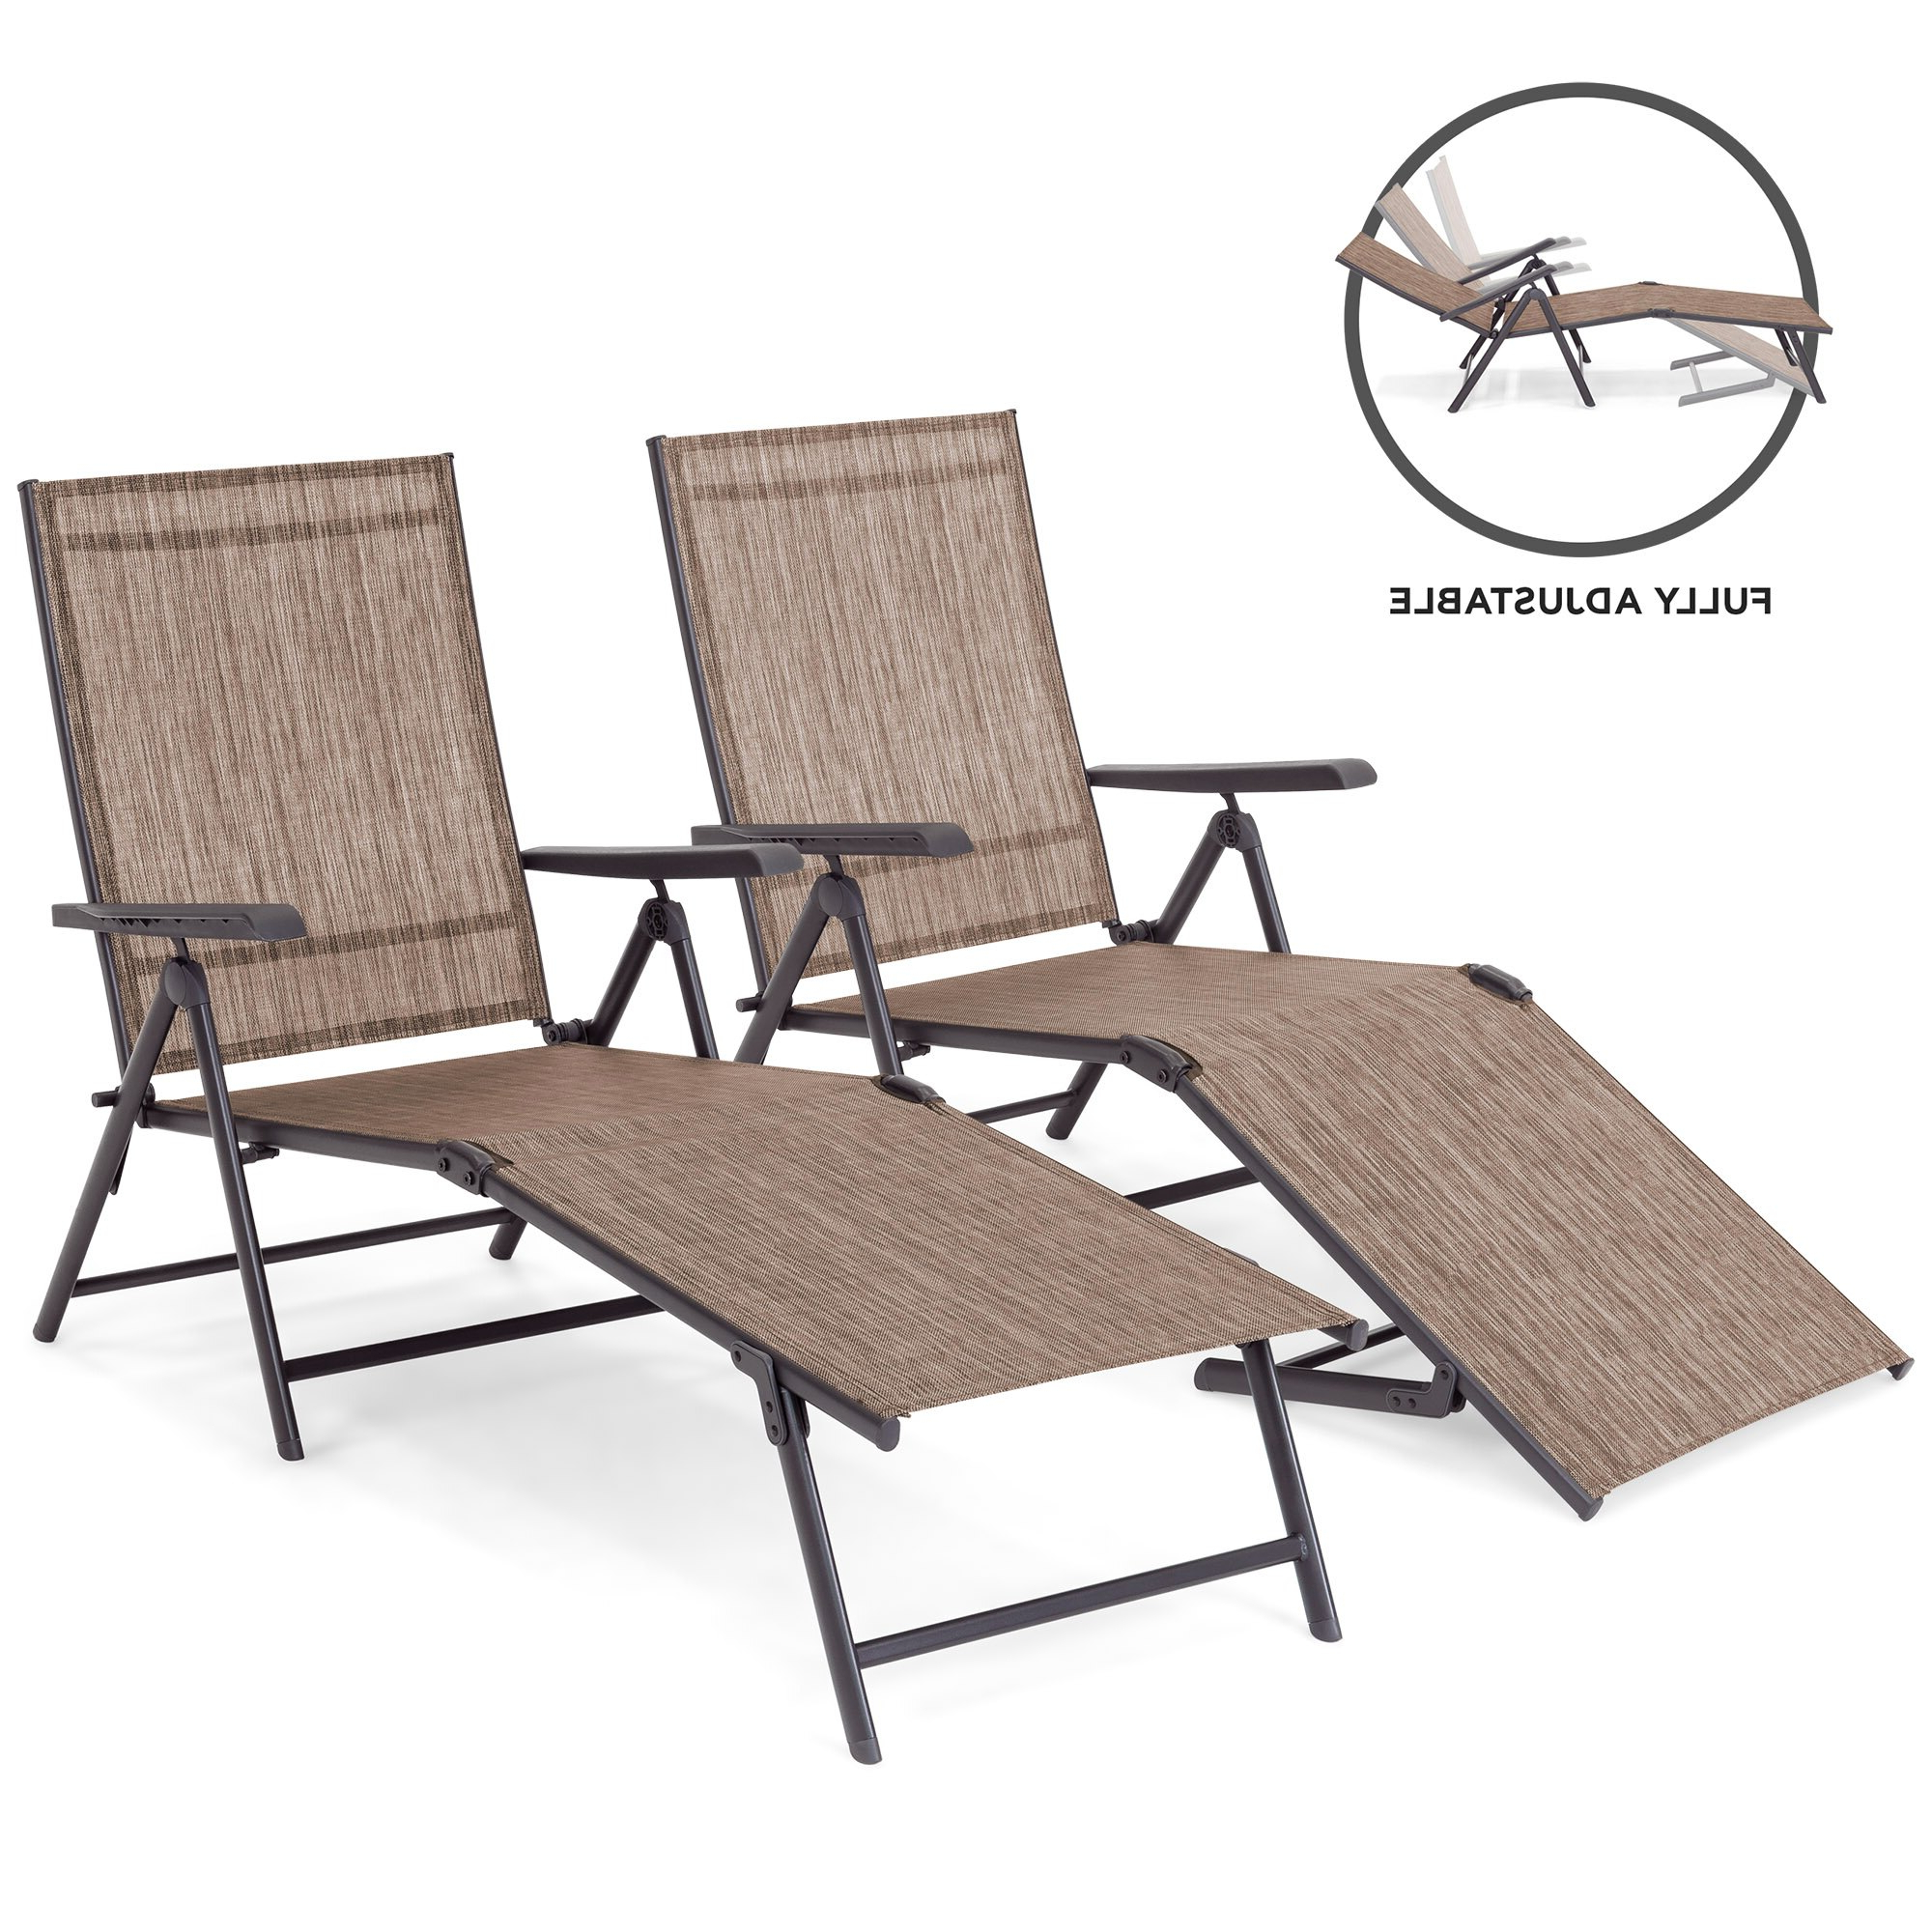 Bestchoiceproducts: Best Choice Products Set Of 2 Outdoor Adjustable  Folding Chaise Lounge Recliner Chairs For Patio, Poolside, Deck – Brown (View 2 of 25)